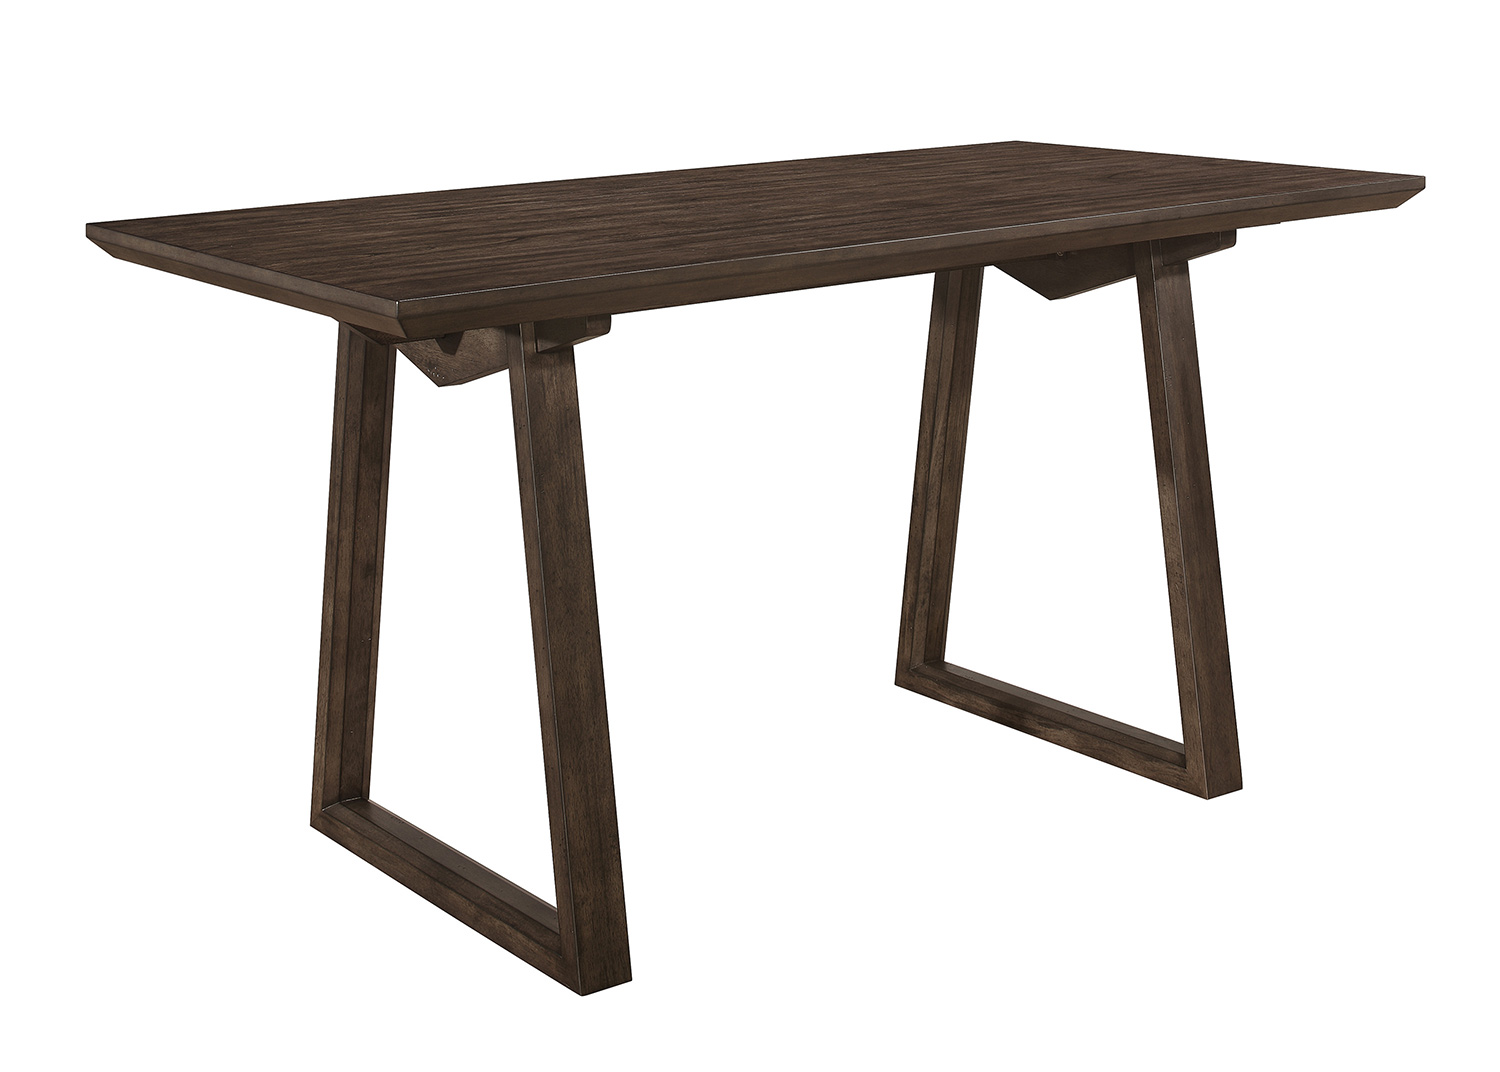 Homelegance Kirke Counter Height Dining Table - Brown